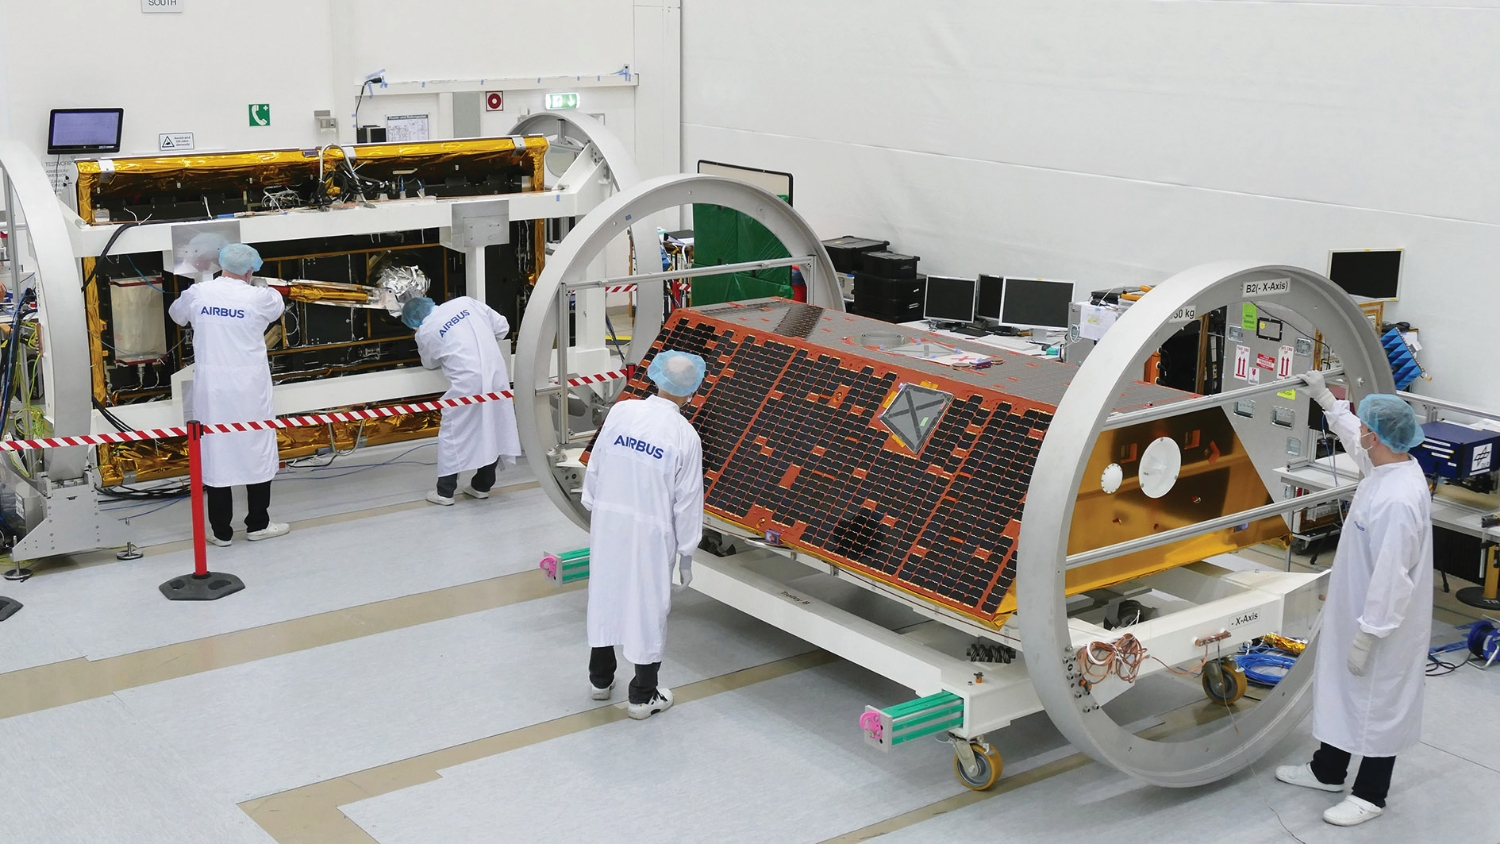 The GRACE-FO satellites were assembled by Airbus Defence and Space in Germany.